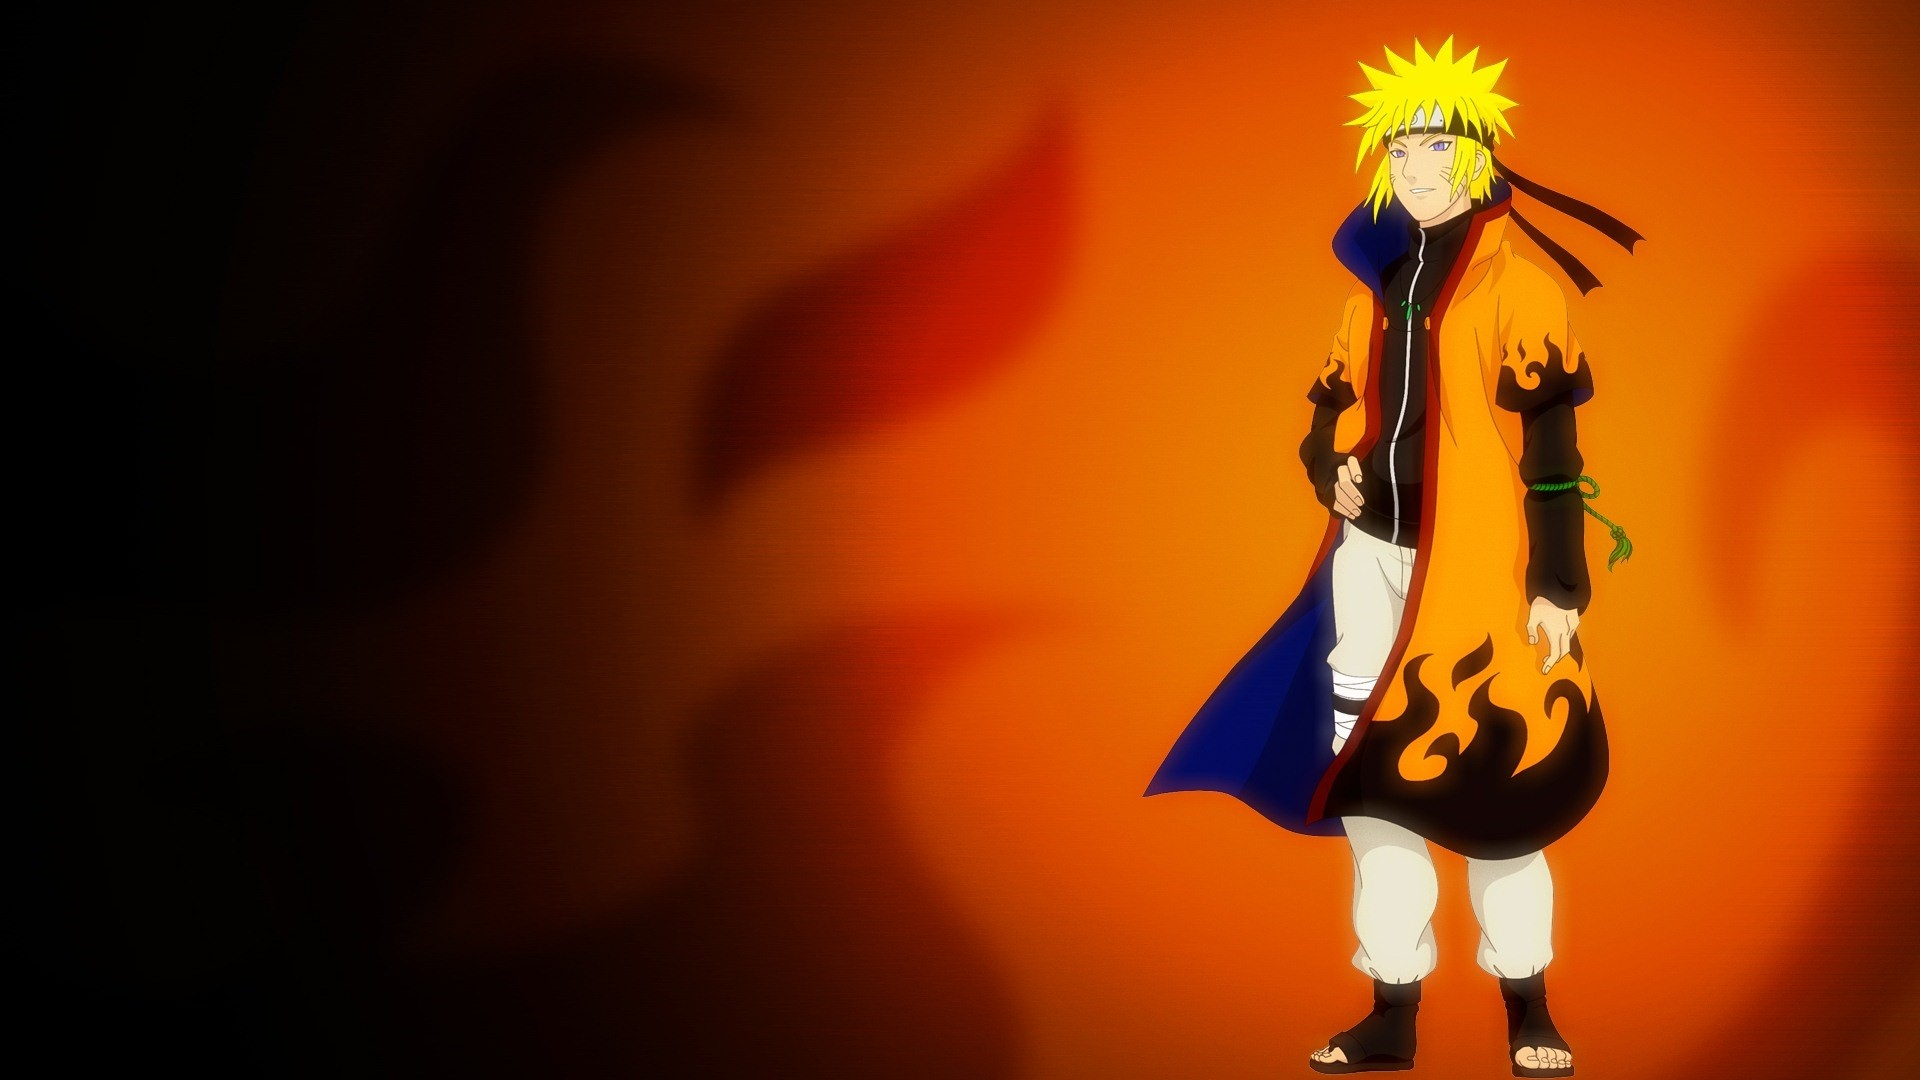 Res: 1920x1080, Awesome Desktop Wallpaper Anime Naruto Gallery - Cool Naruo Anime 1080p  Wallpaper